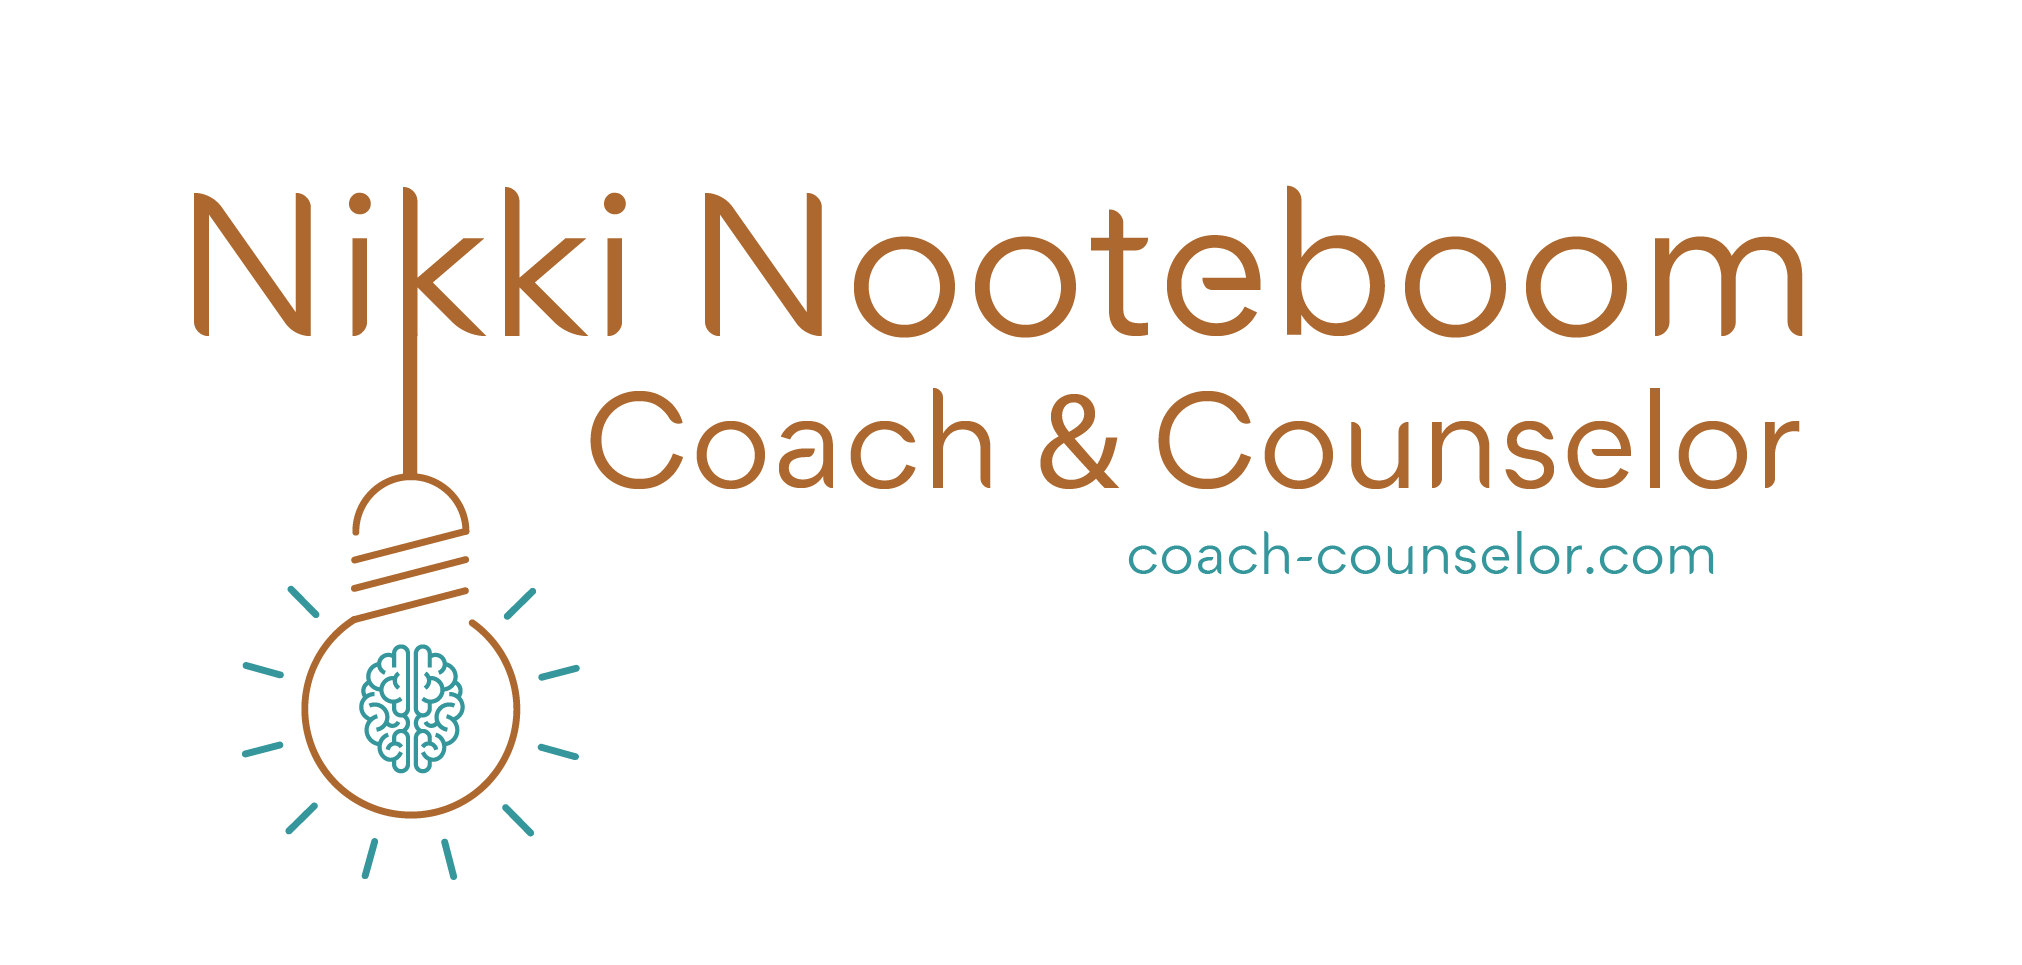 Coach & Counselor